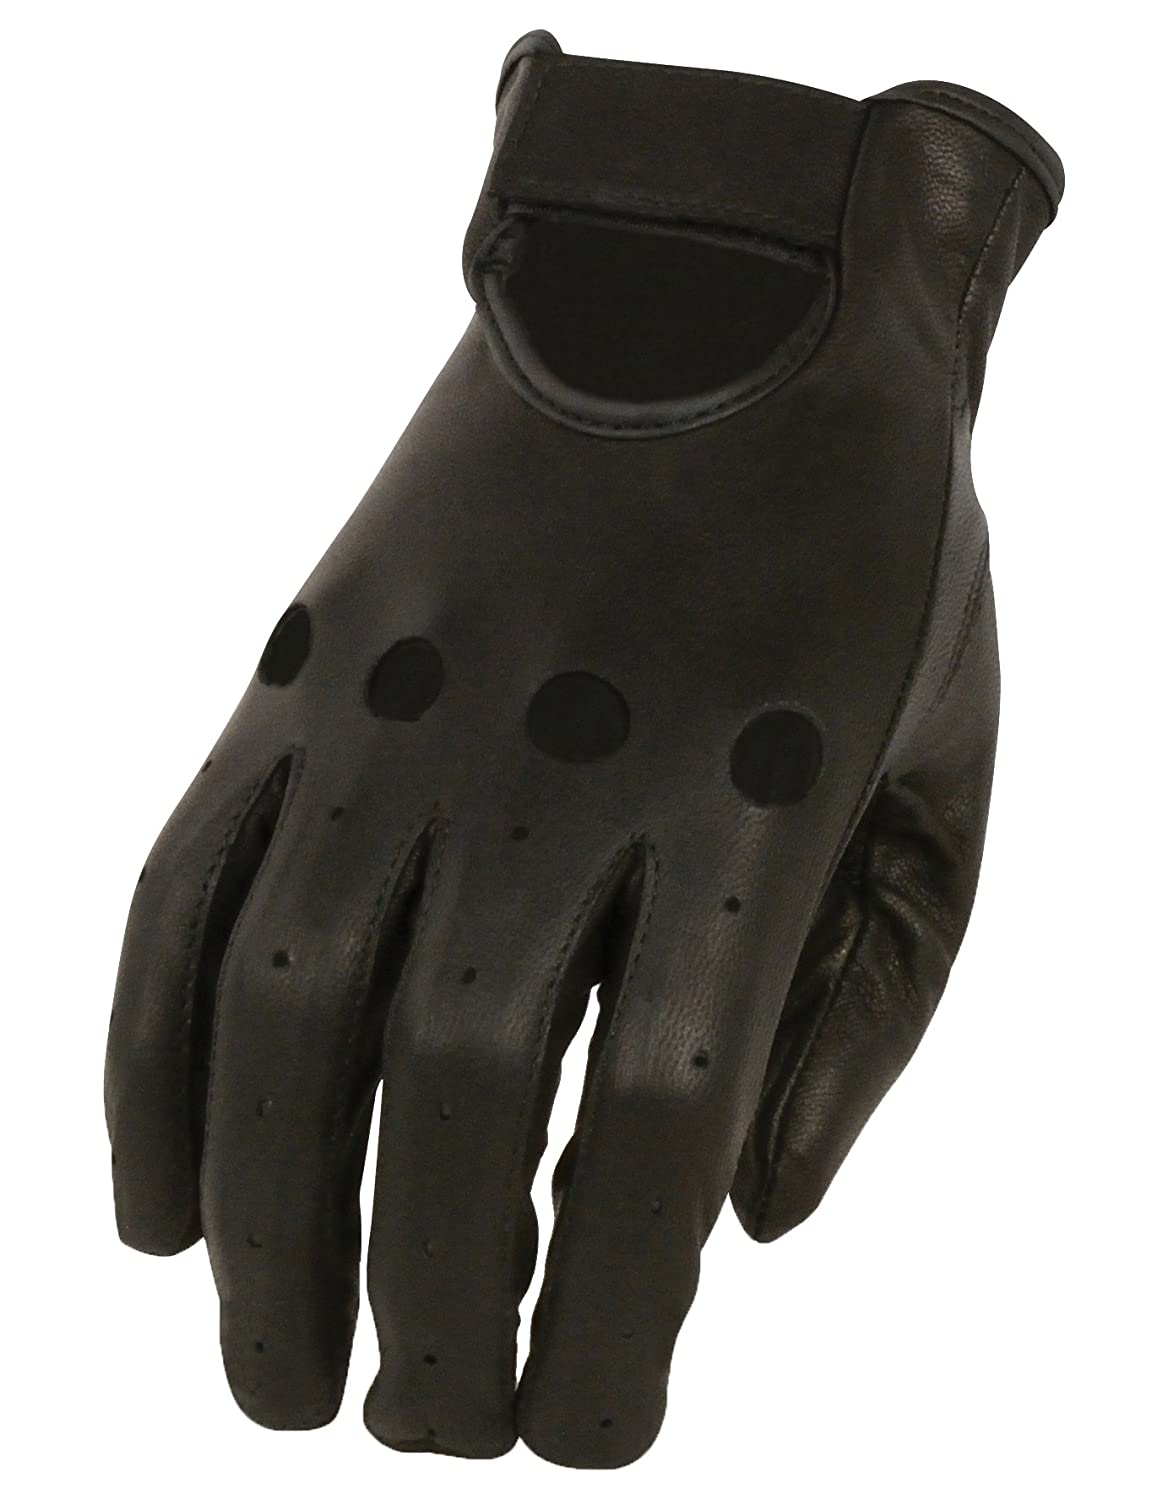 Milwaukee Leather Women's Unlined Driving Gloves (Black, Medium) SH721-BLK-M